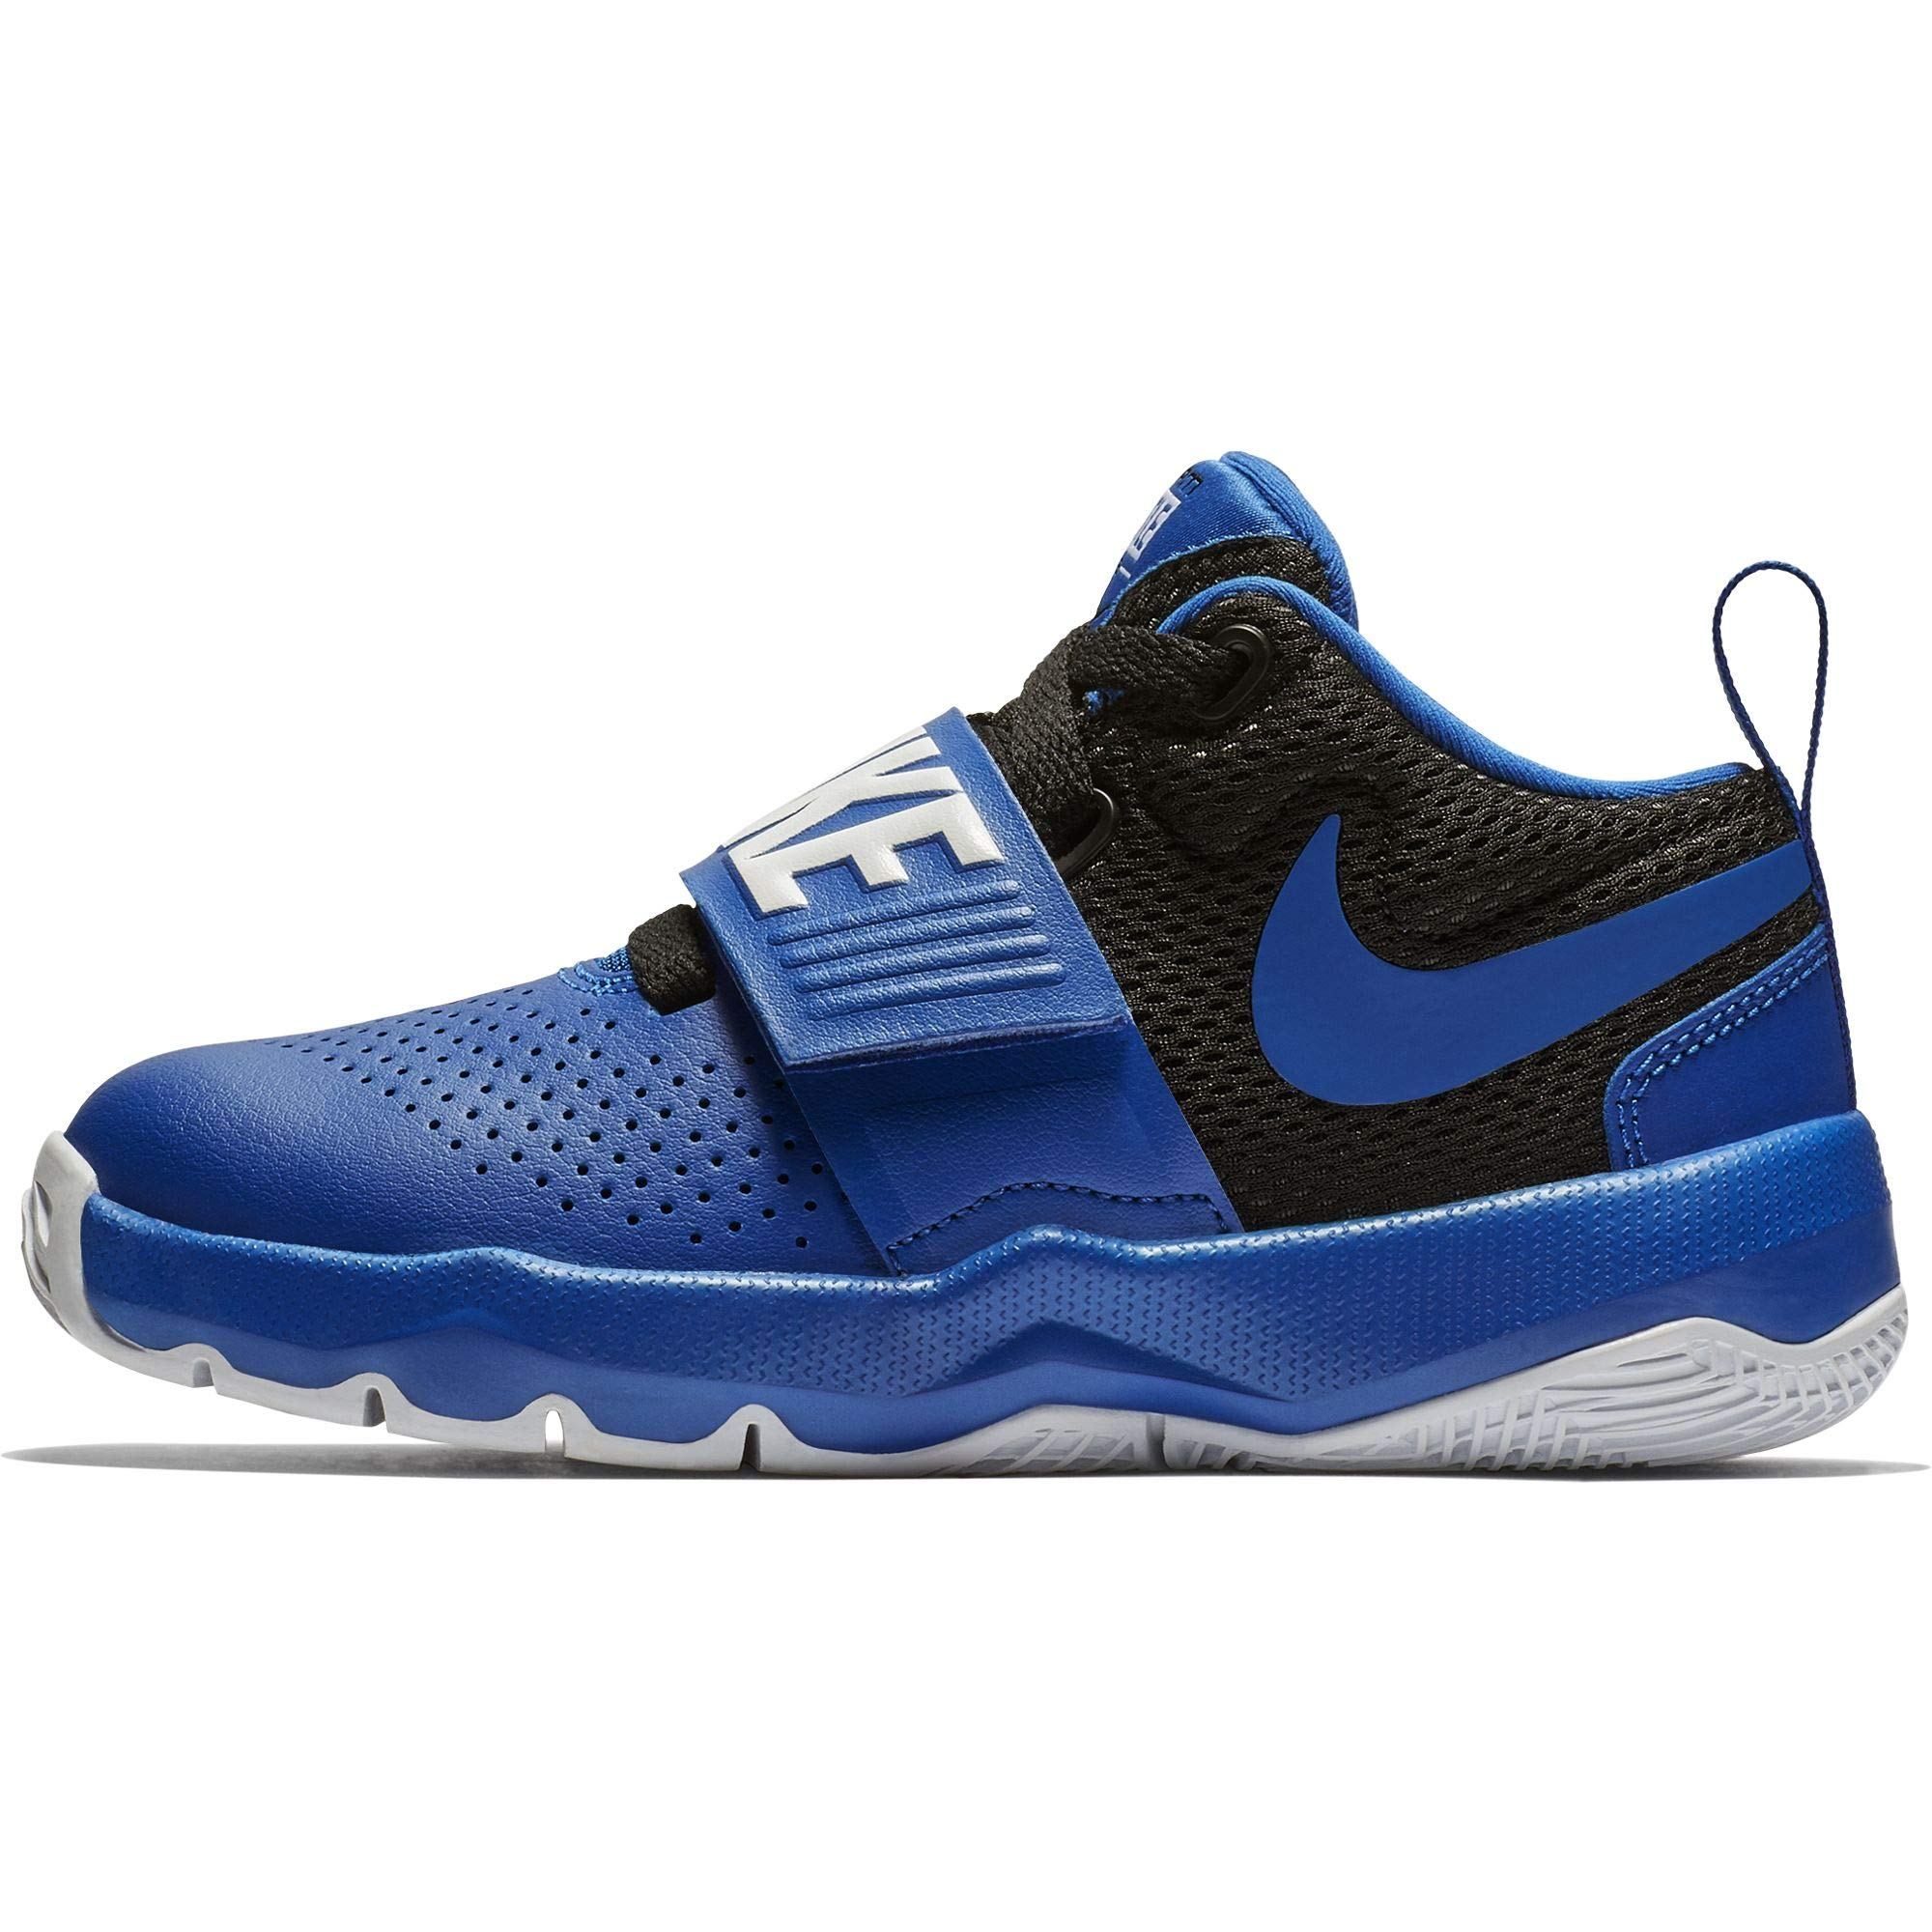 0ee0f2d3eef82 Galleon - NIKE Boy s Team Hustle D 8 (PS) Pre School Basketball Shoe Game  Royal Black White Size 12 Kids US